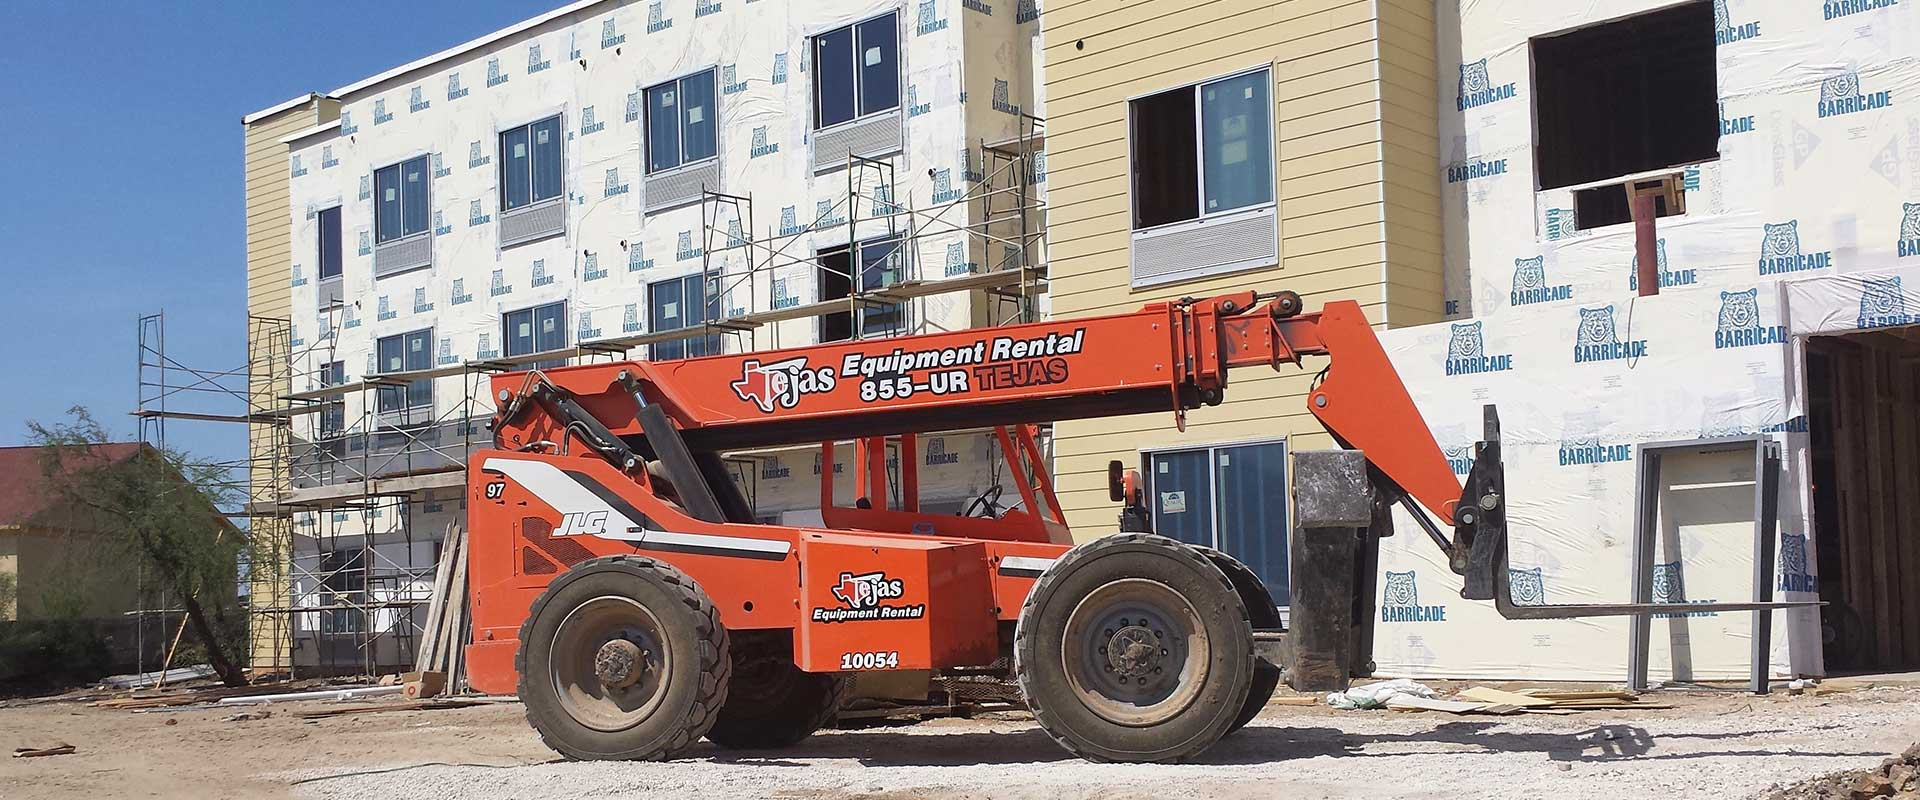 Equipment Rentals In South Texas And Central Texas Tejas